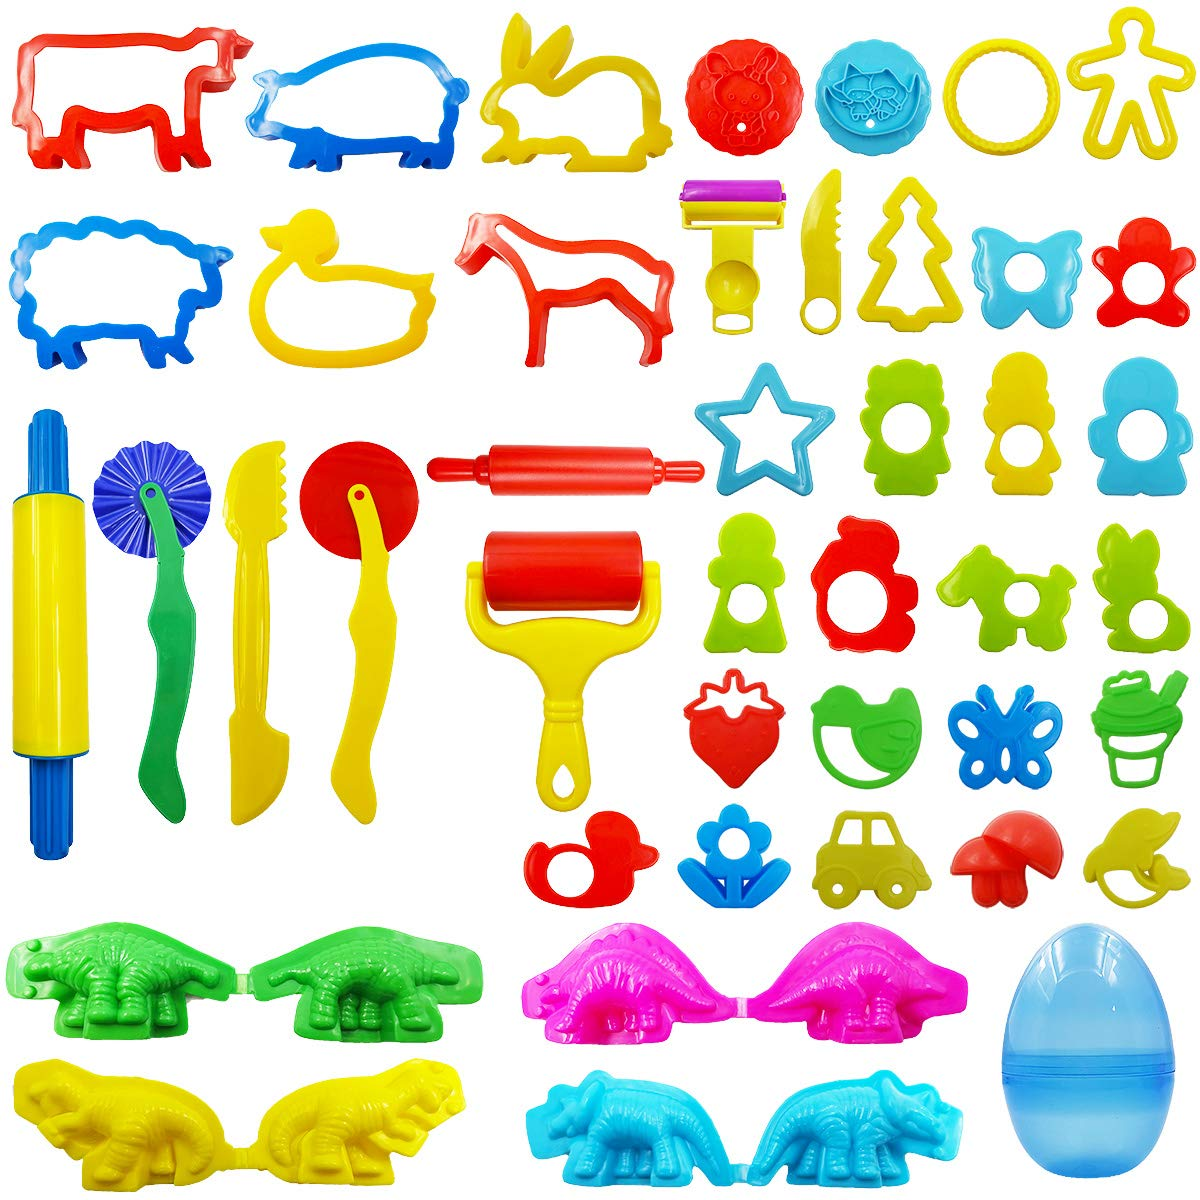 FRIMOONY Play Dough Tools Set for Kids, Various Plastic Animal Molds, Clay Rolling Pins, for Creative Dough Cutting, 44 Pieces by FRIMOONY